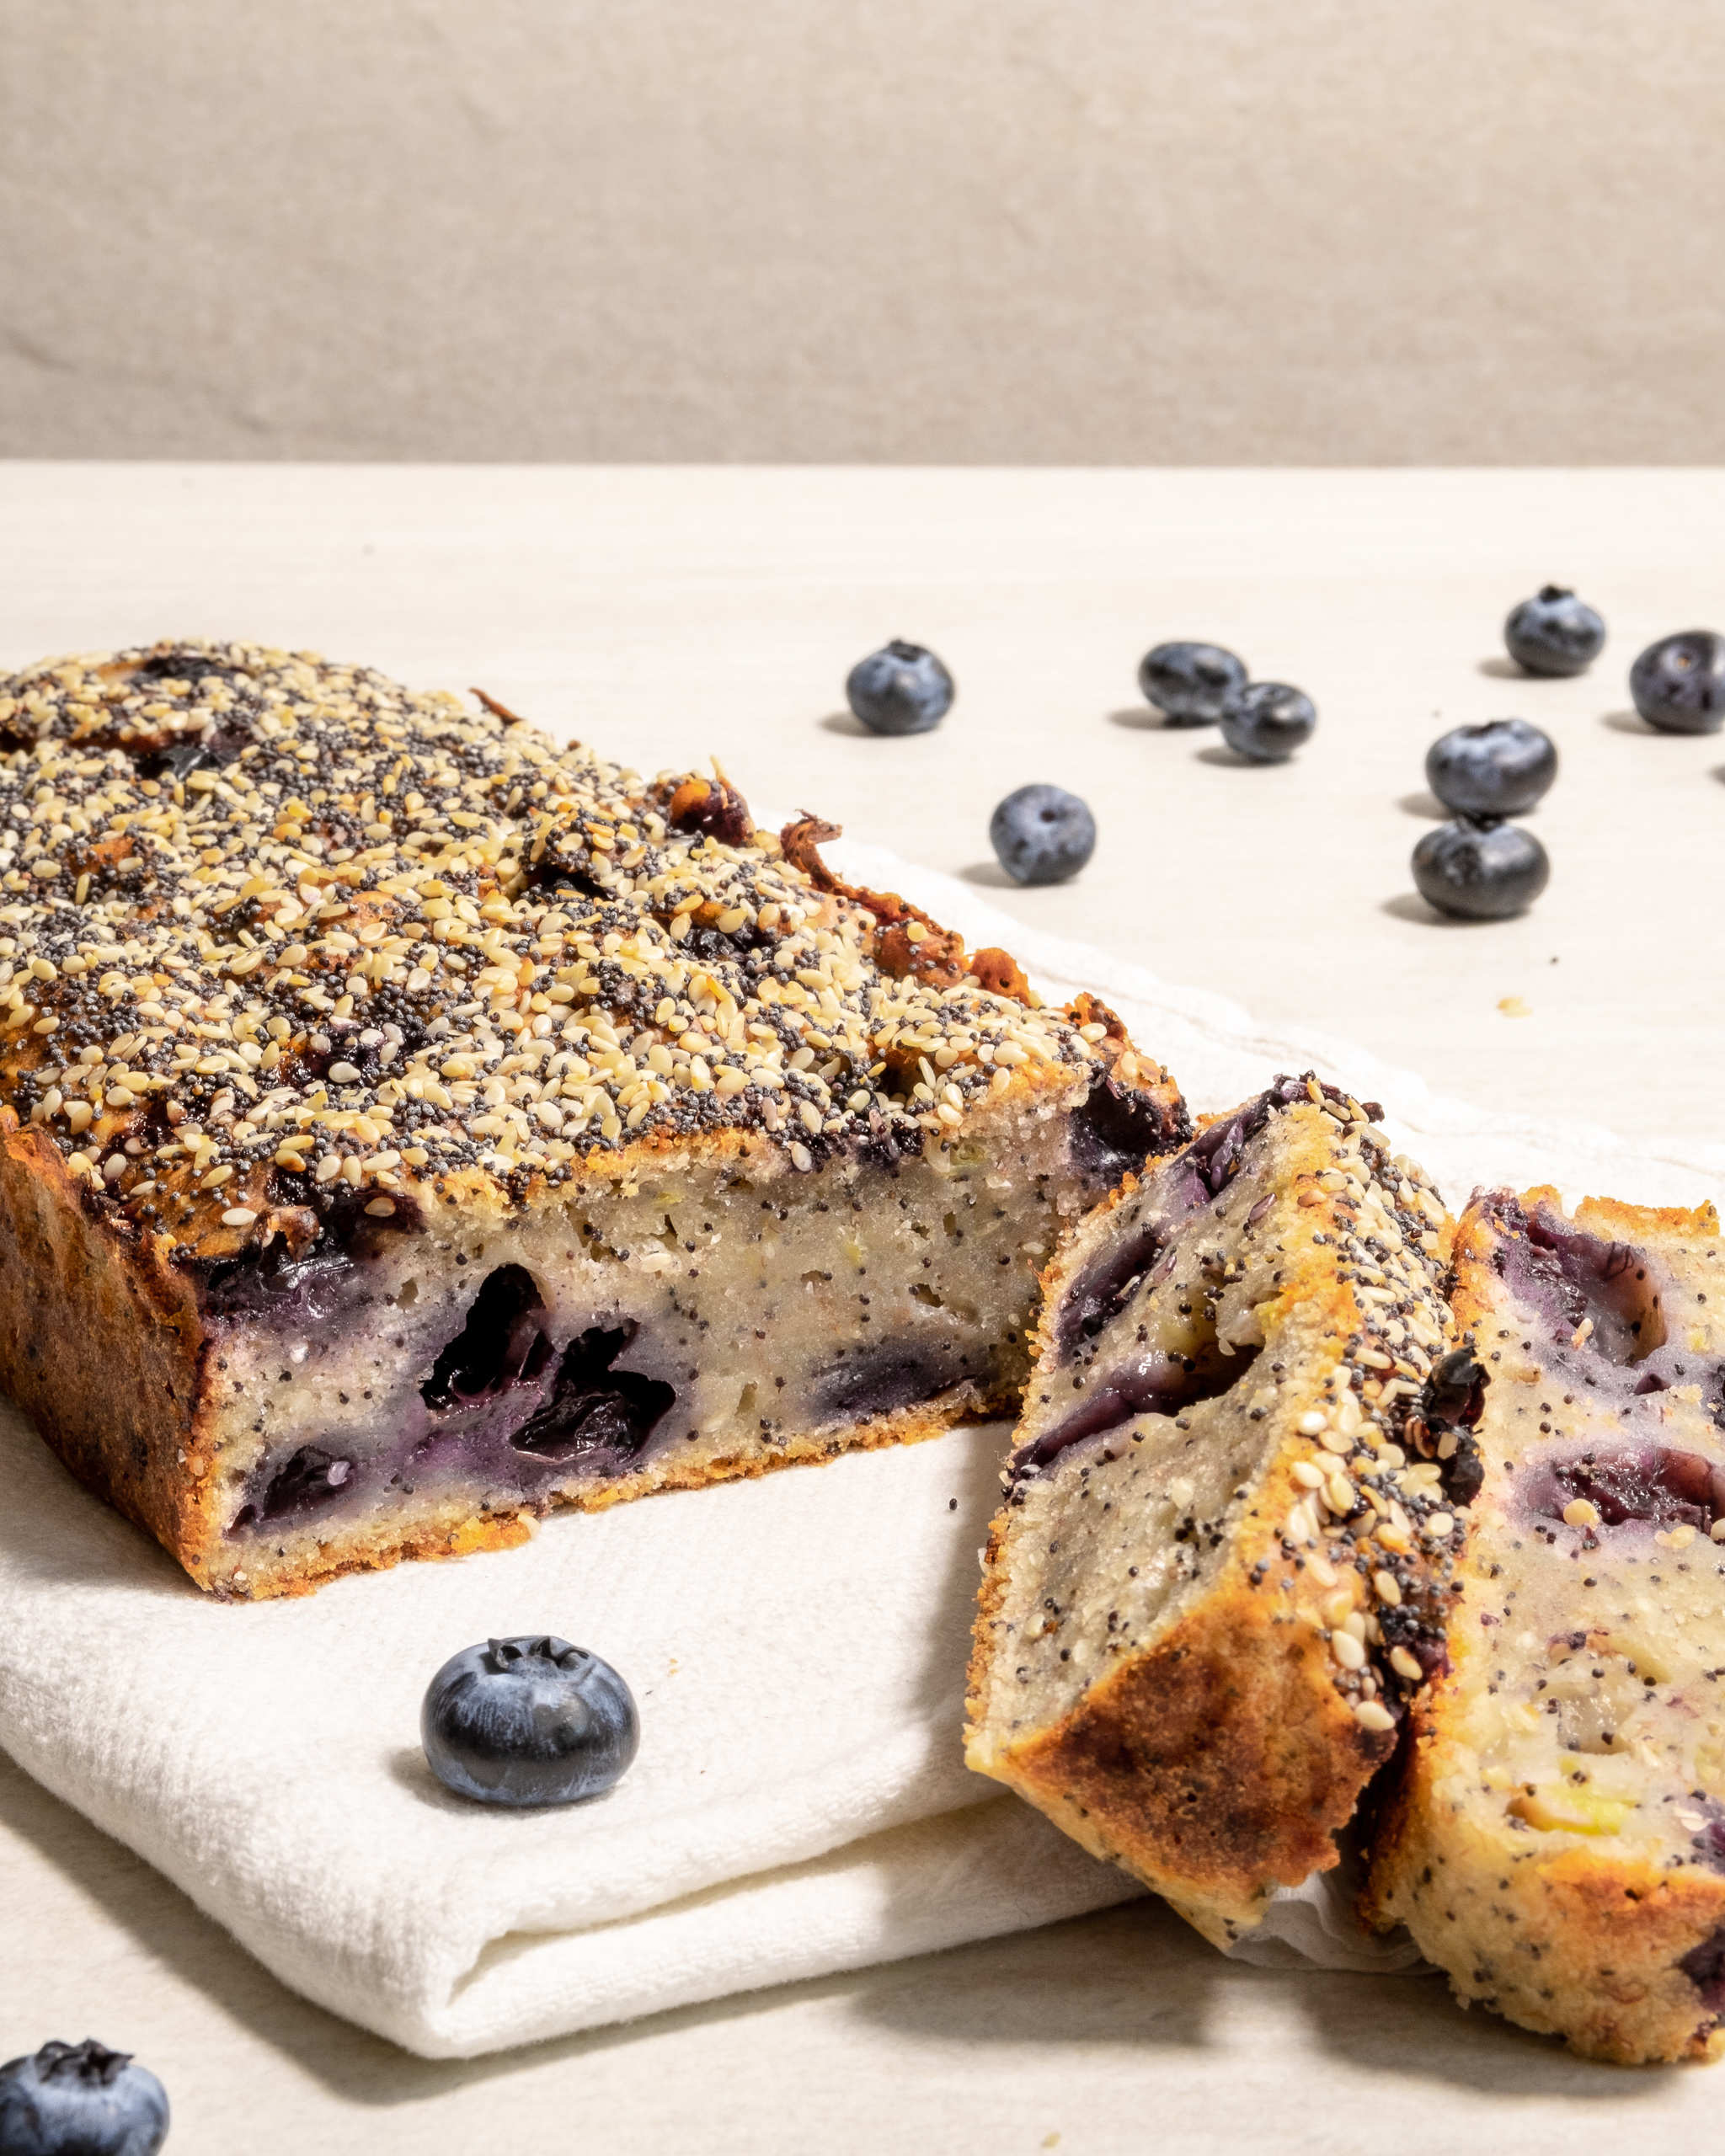 Sweet banana bread with blueberries